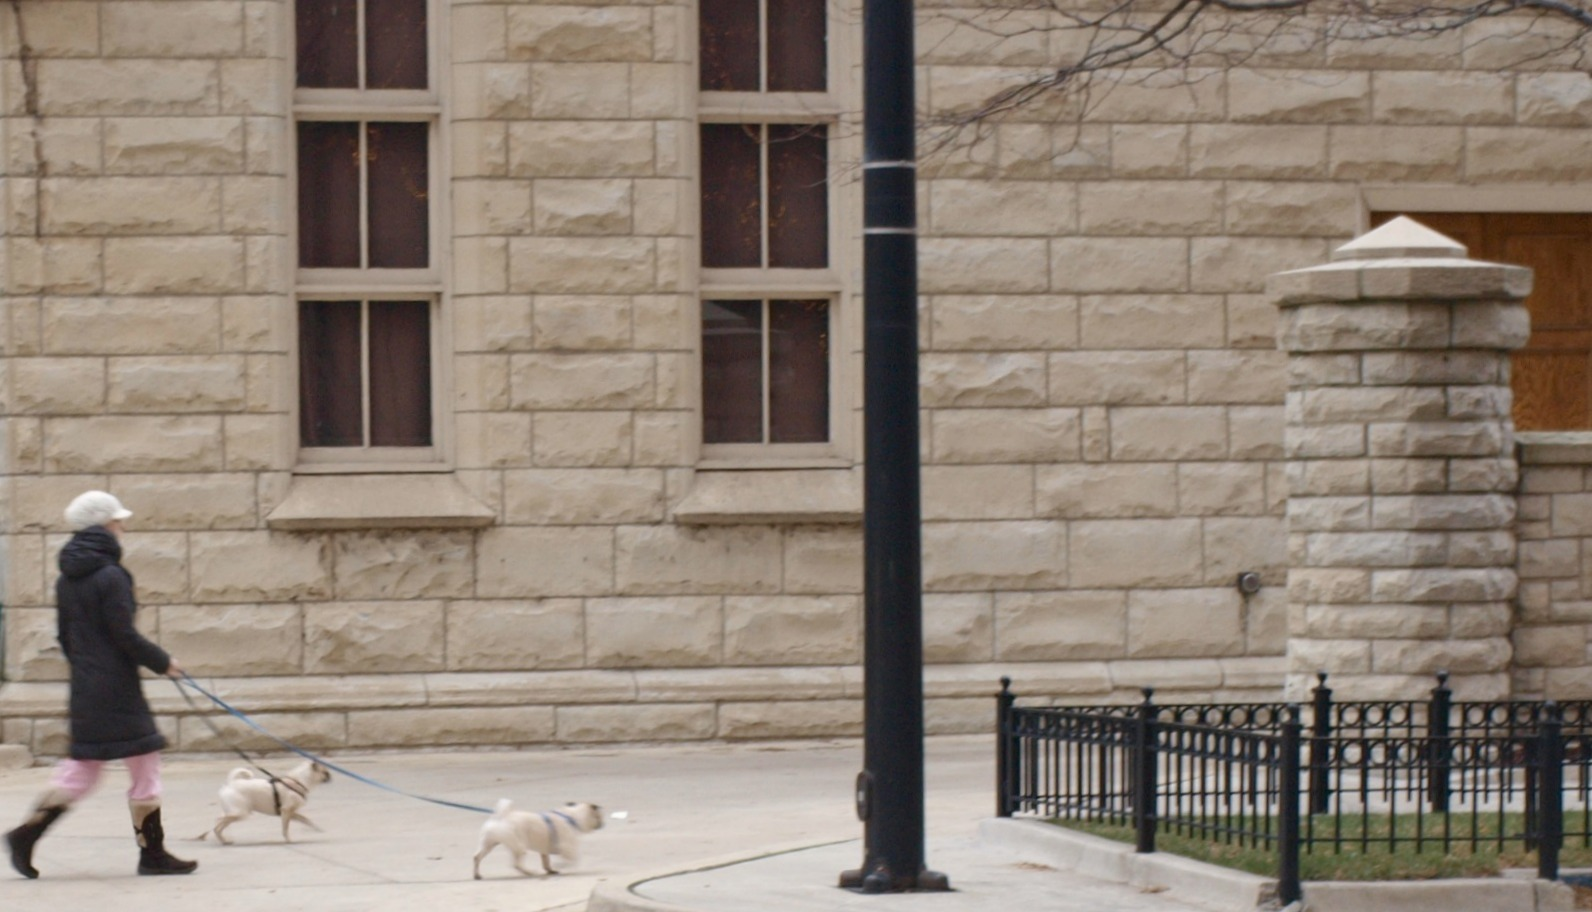 limestone building Chicago woman walking pugs by Hello Lovely Studio